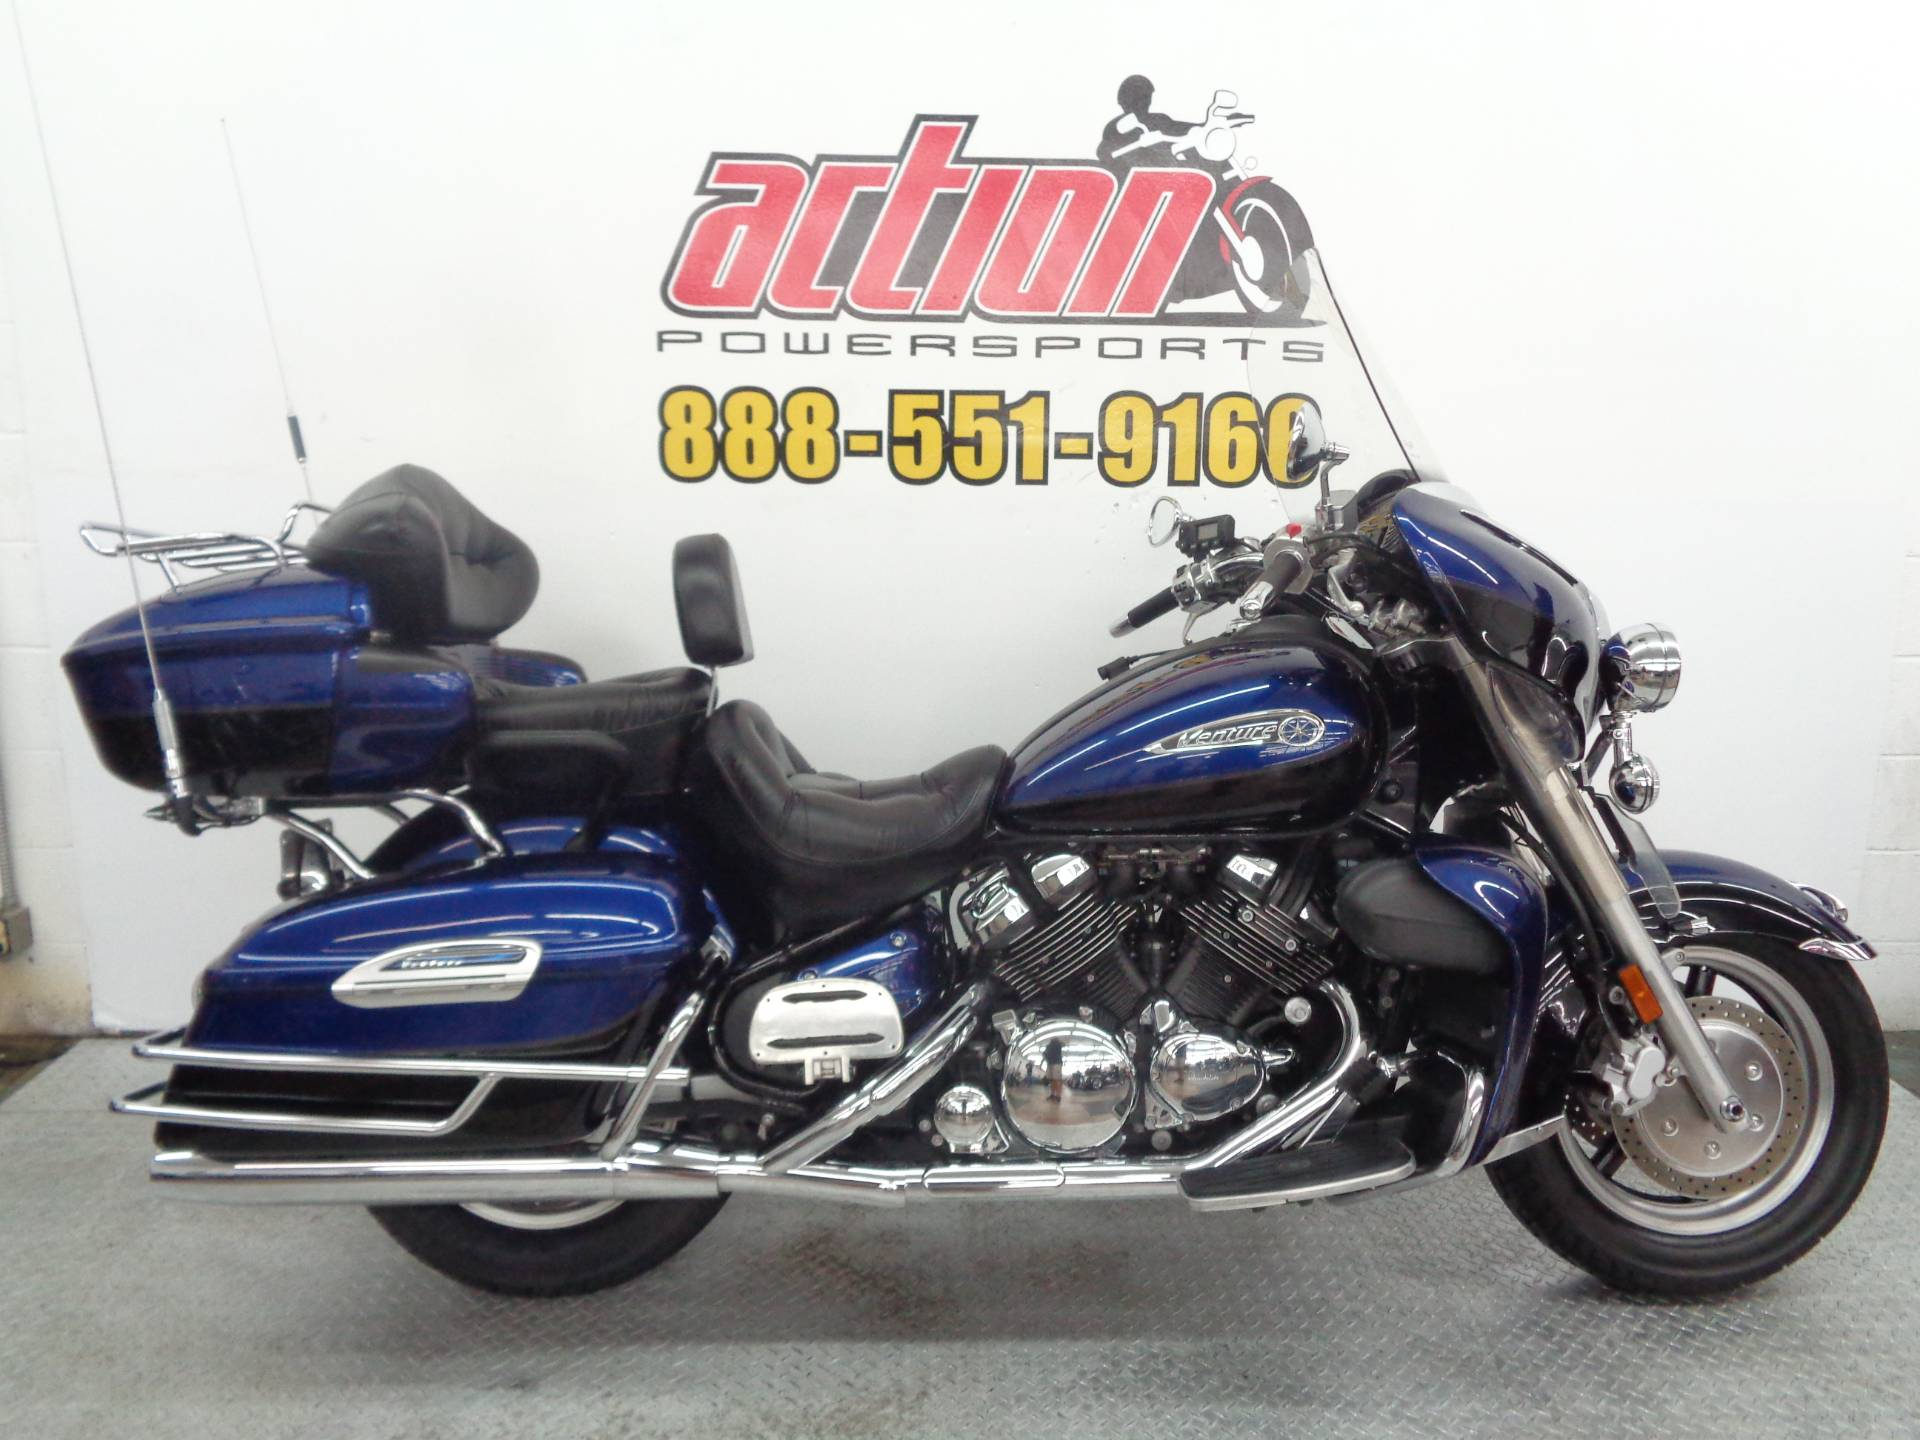 Used 2007 Yamaha Royal Star® Venture Motorcycles in Tulsa, OK ...